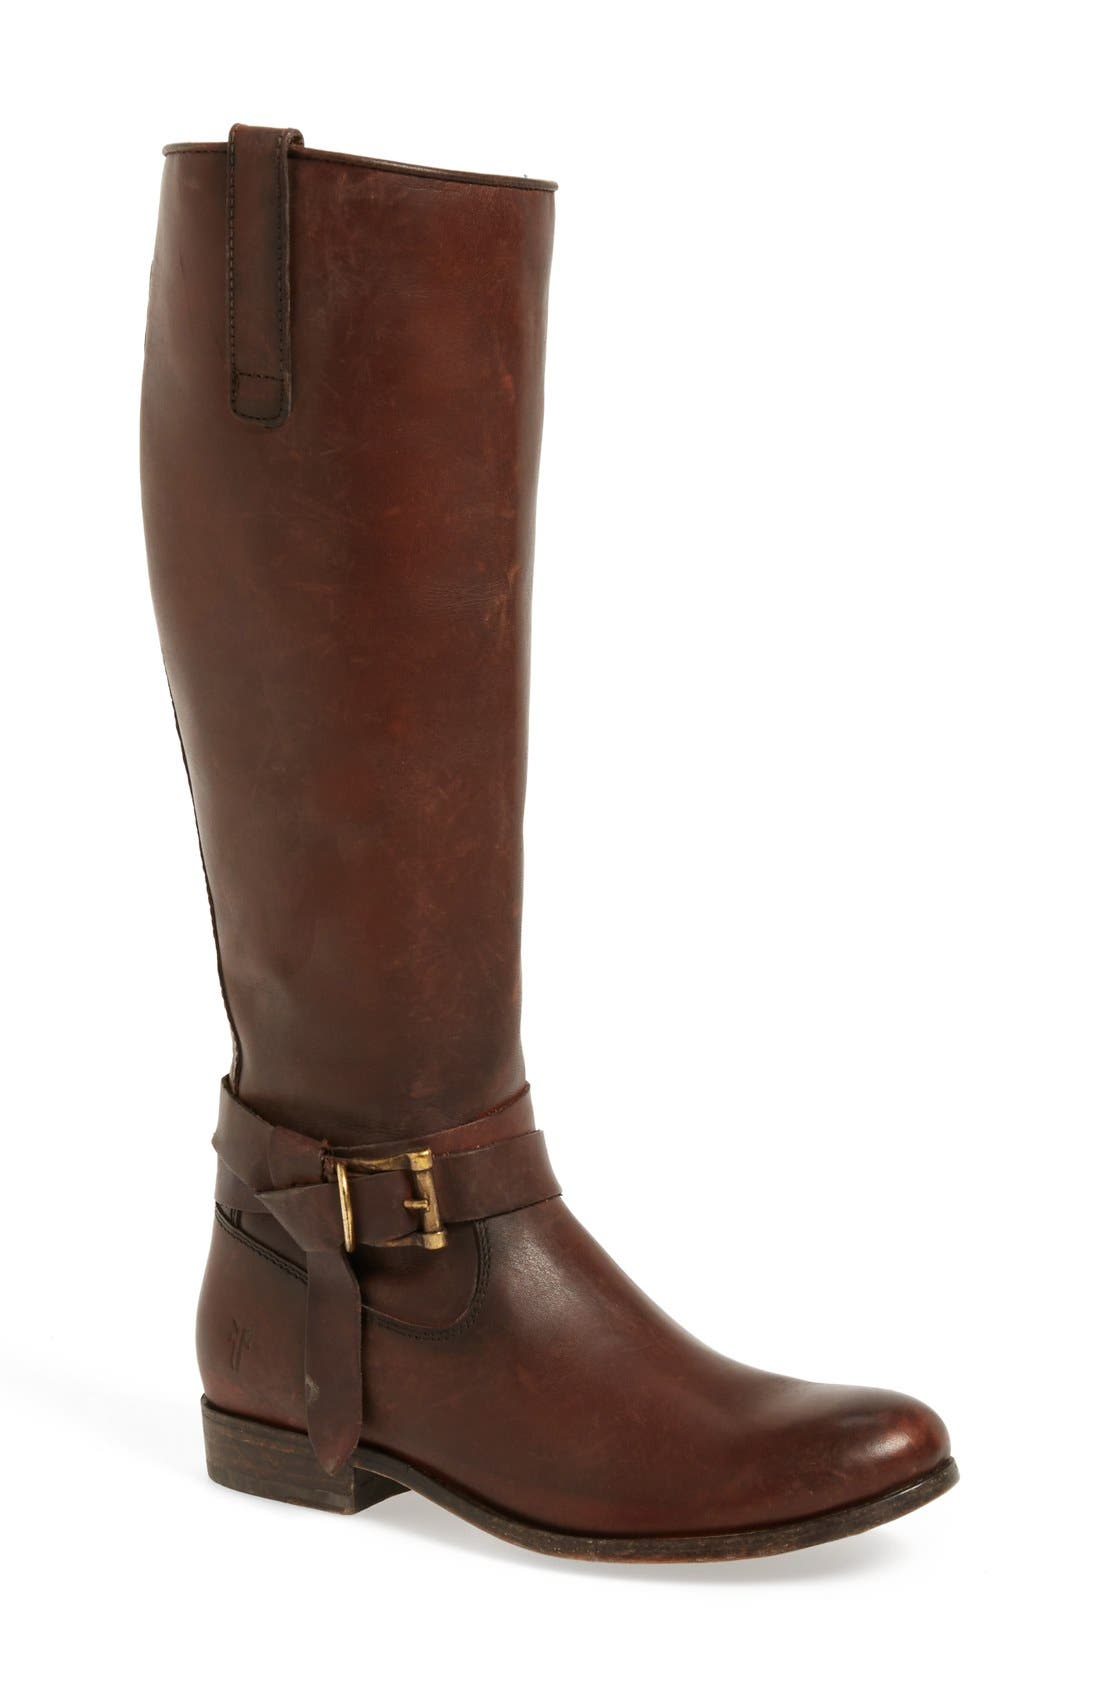 Alternate Image 1 Selected - Frye 'Melissa Knotted' Tall Boot (Women)